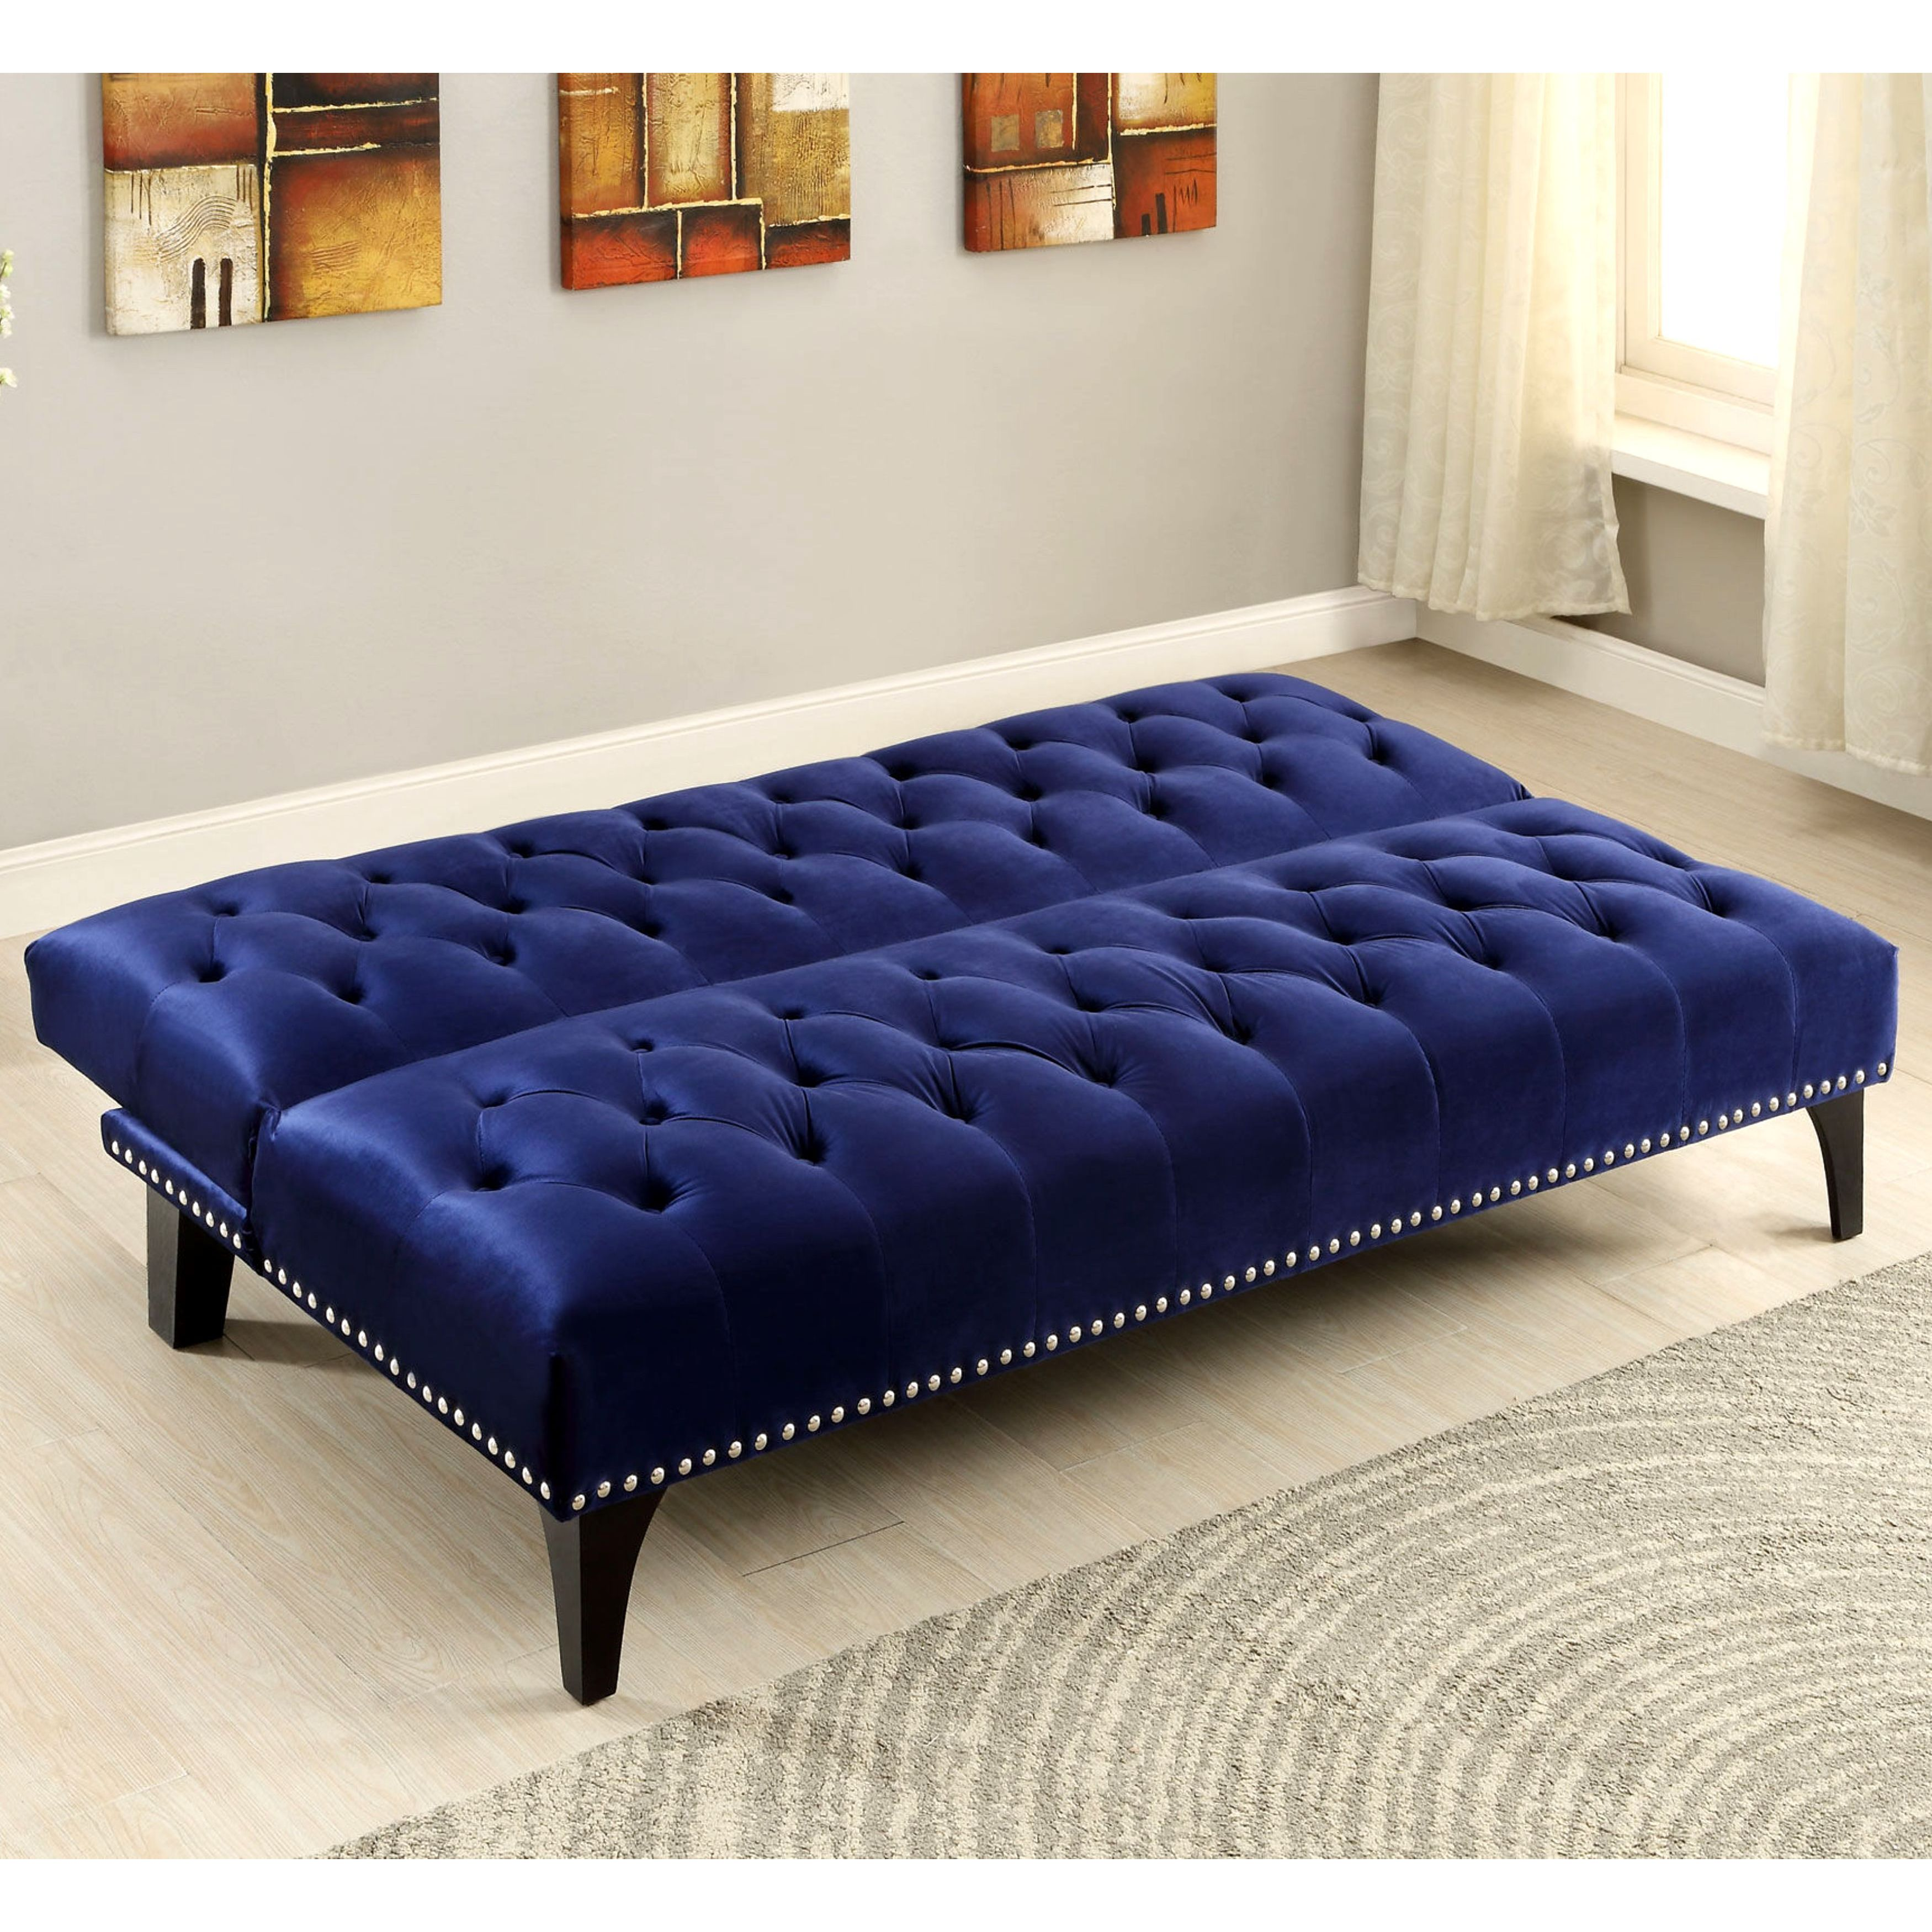 Xnron On Tufted Royal Blue Velvet Sofa Bed Lounger With Nailhead Trim Free Shipping Today 11088843